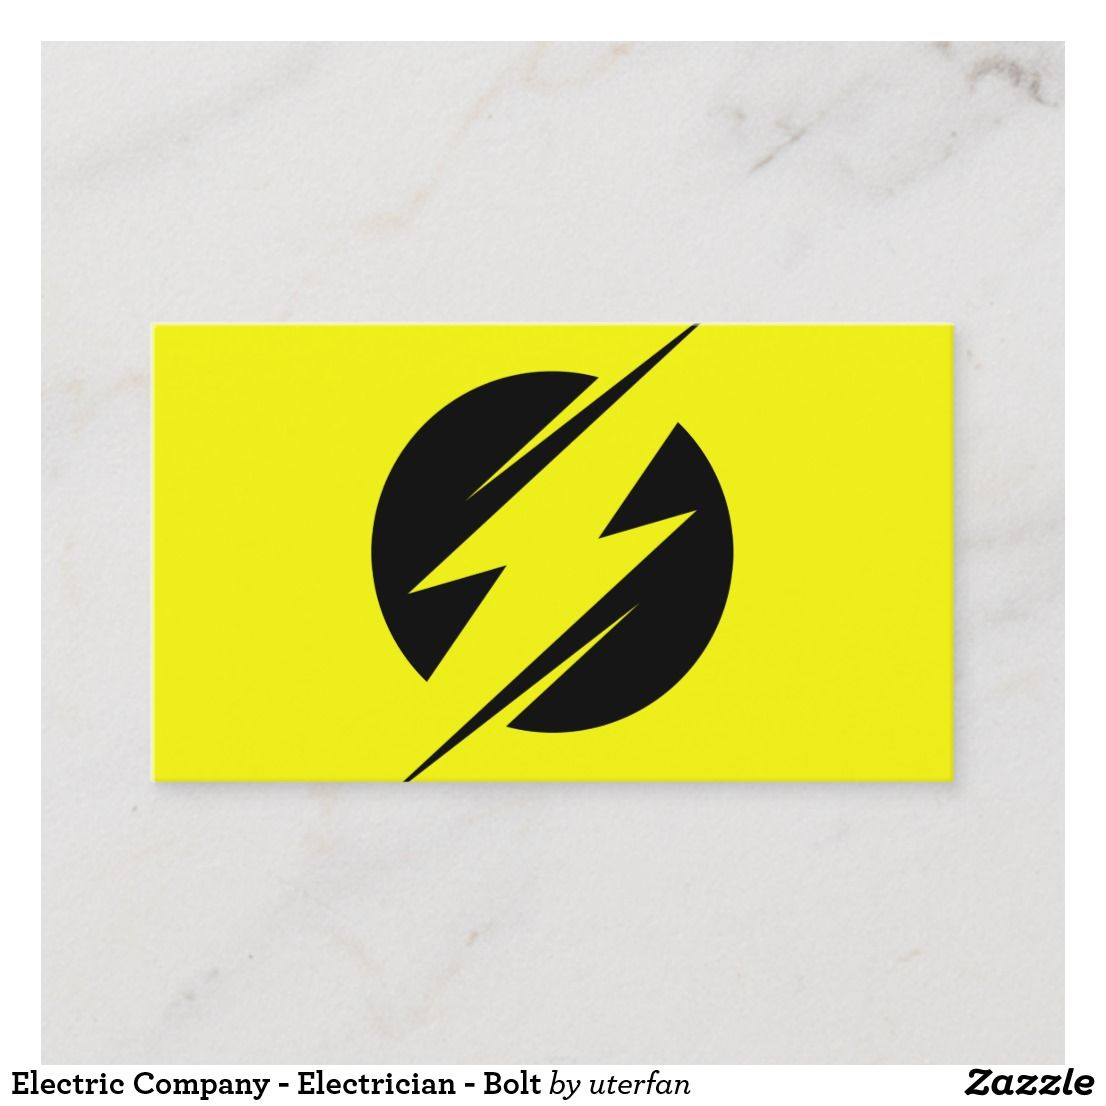 Electric Company Electrician Bolt Business Card Zazzle Com Electrician Minimalist Business Cards Electrical Company Logo